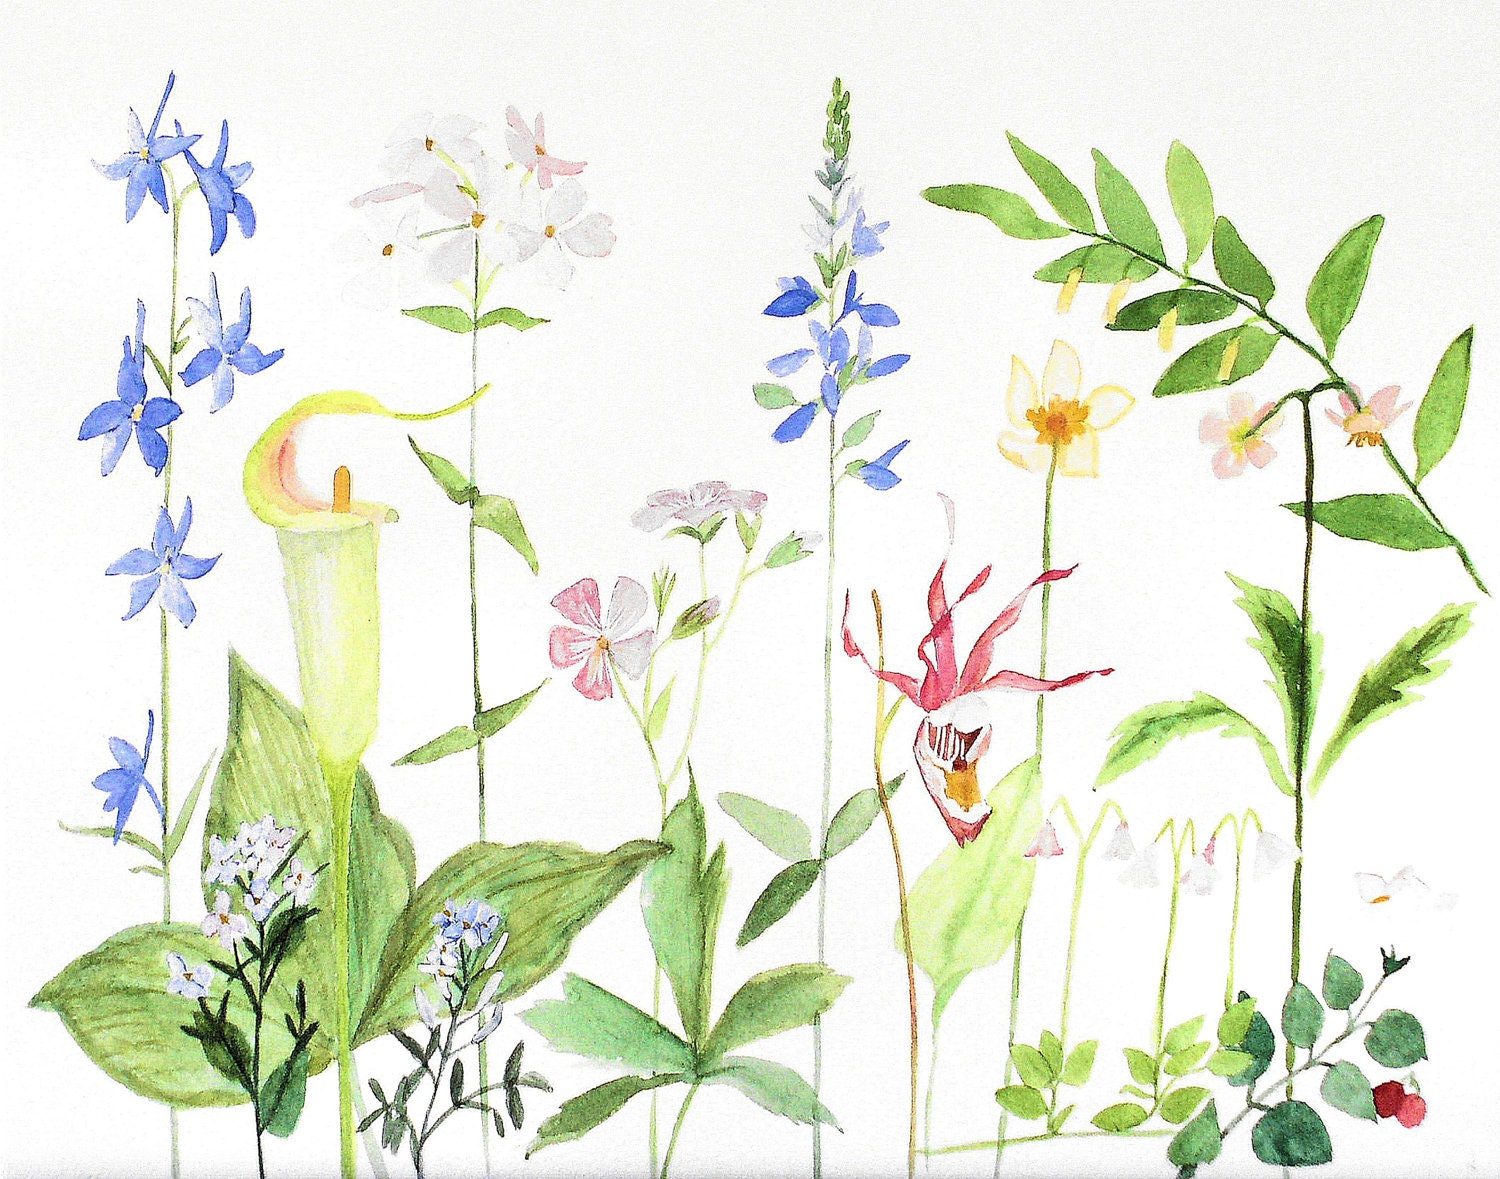 Watercolor Painting/ Giclee Print/ Woodland Wild Flowers/ Professional Museum Quality/ Artwork by Laurie Rohner/ 9 x 12